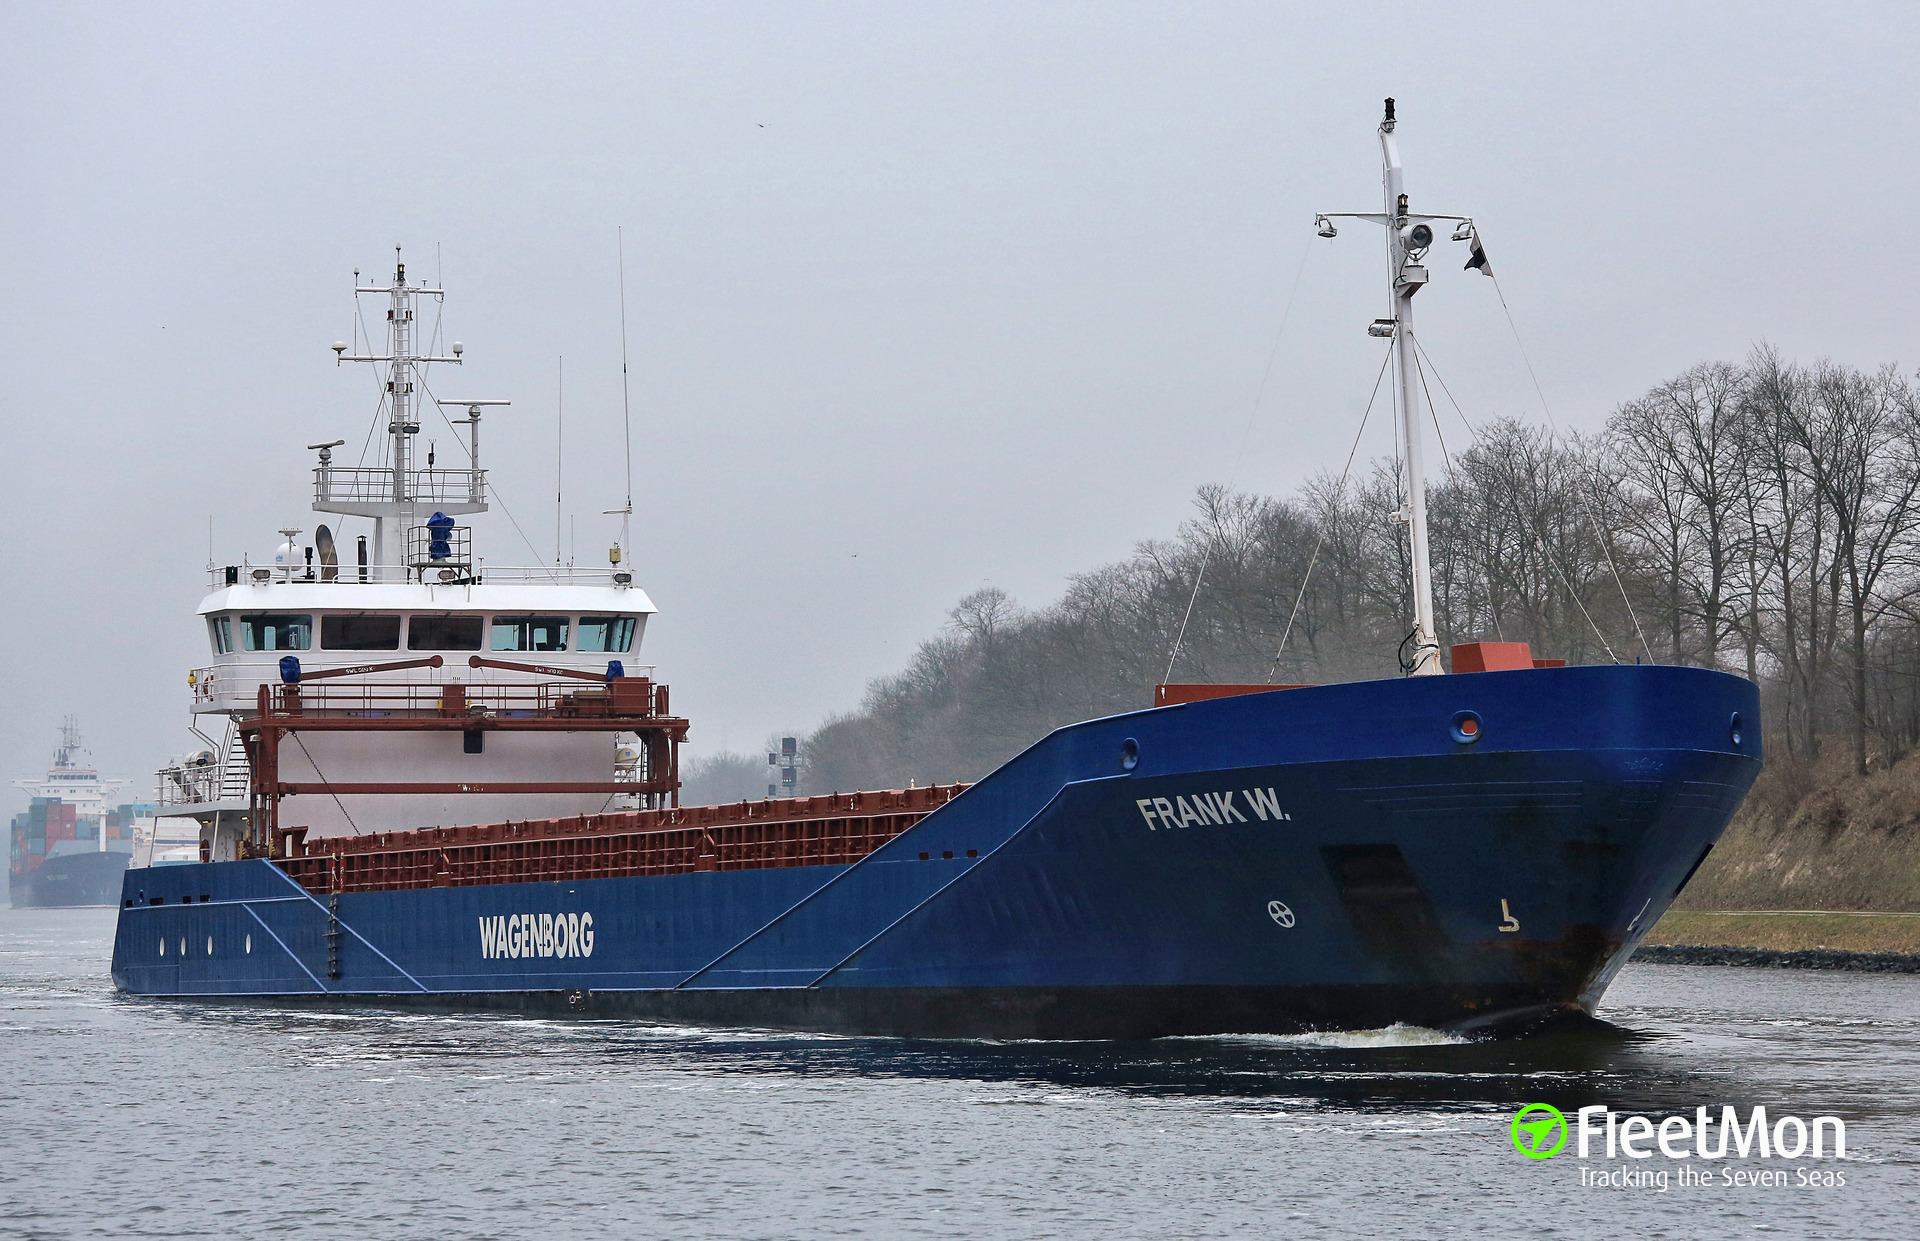 Russian Master of Dutch freighter RUYTER found guilty, fined